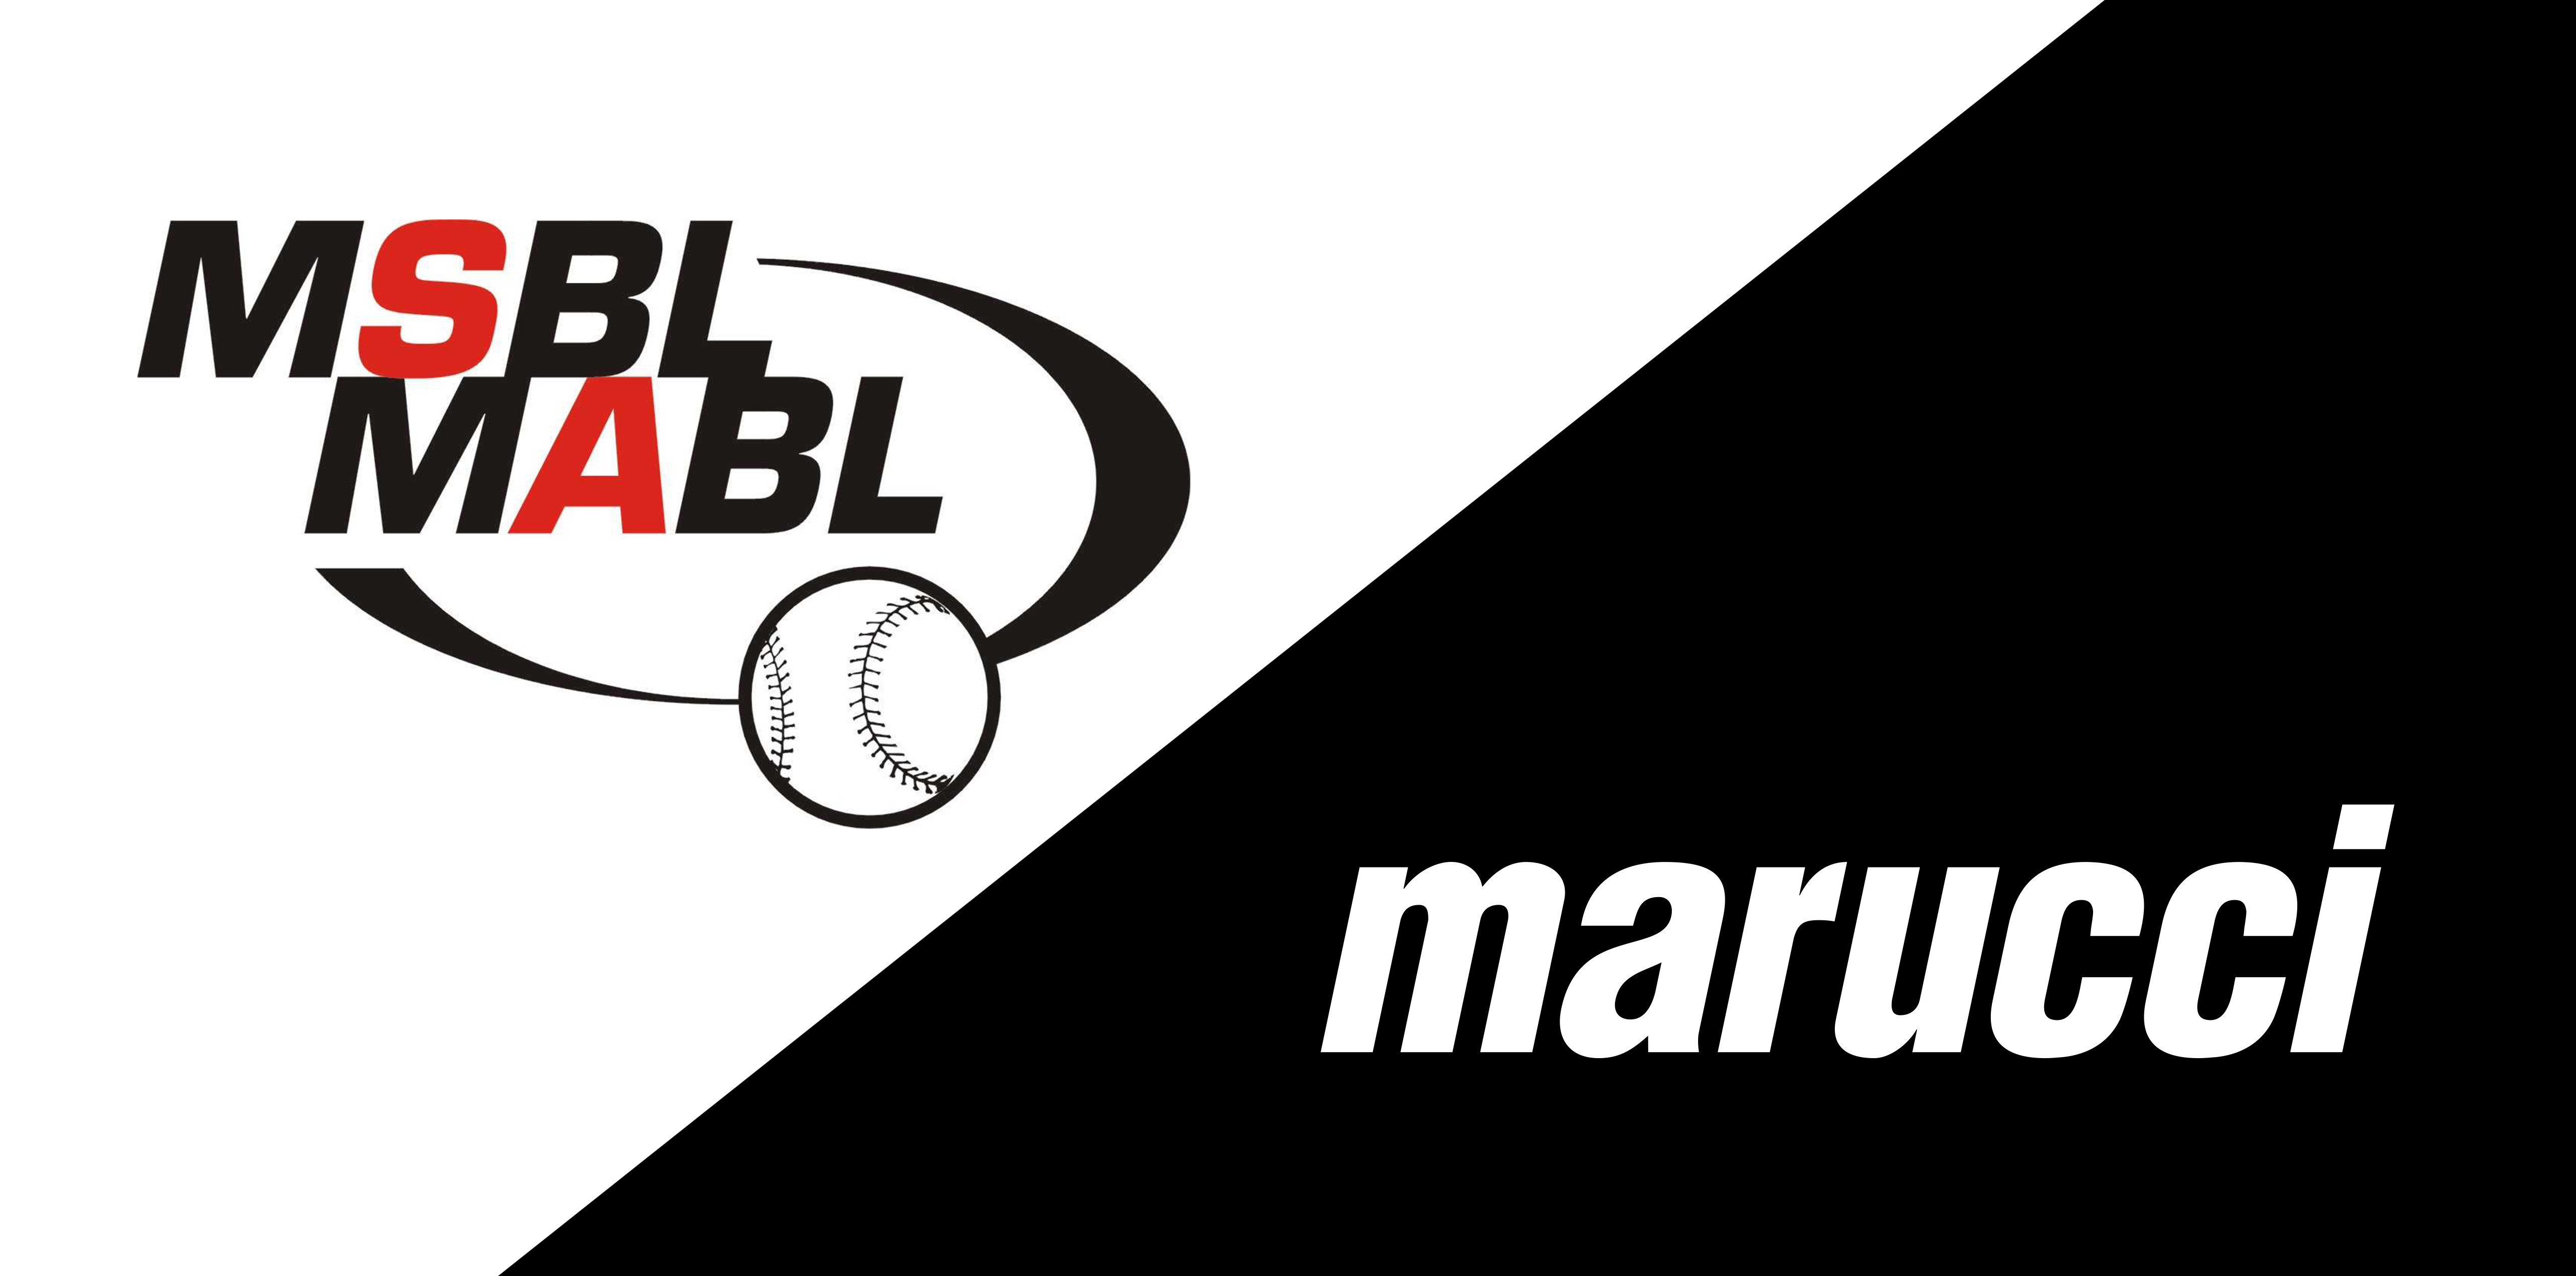 Marucci Sports Becomes National Sponsor of MSBL/MABL